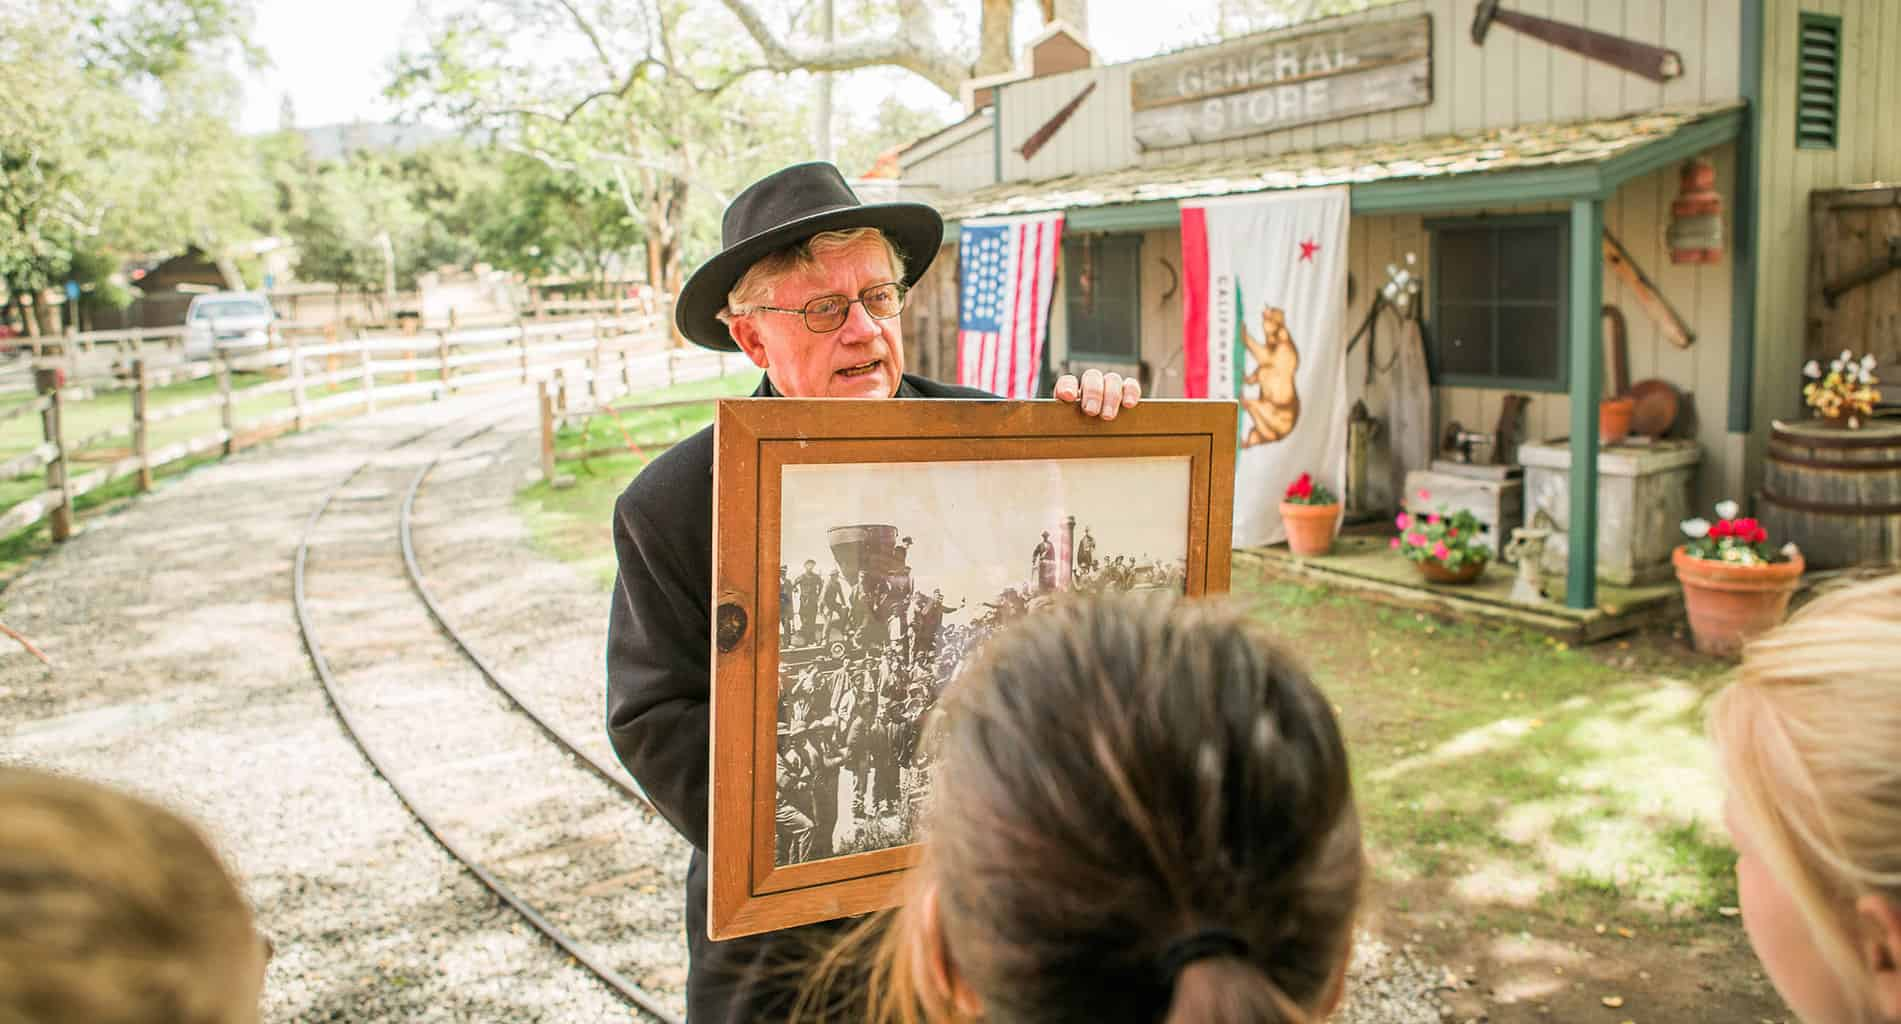 Are you looking for a fun and interactive California history field trip for kids? Then check out the California History Education Program at the Irvine Park Railroad in Orange, California. Each year the Irvine Park Railroad invites hundreds of homeschoolers and school groups from across Southern California to come and learn about California's gold rush period and early state history.